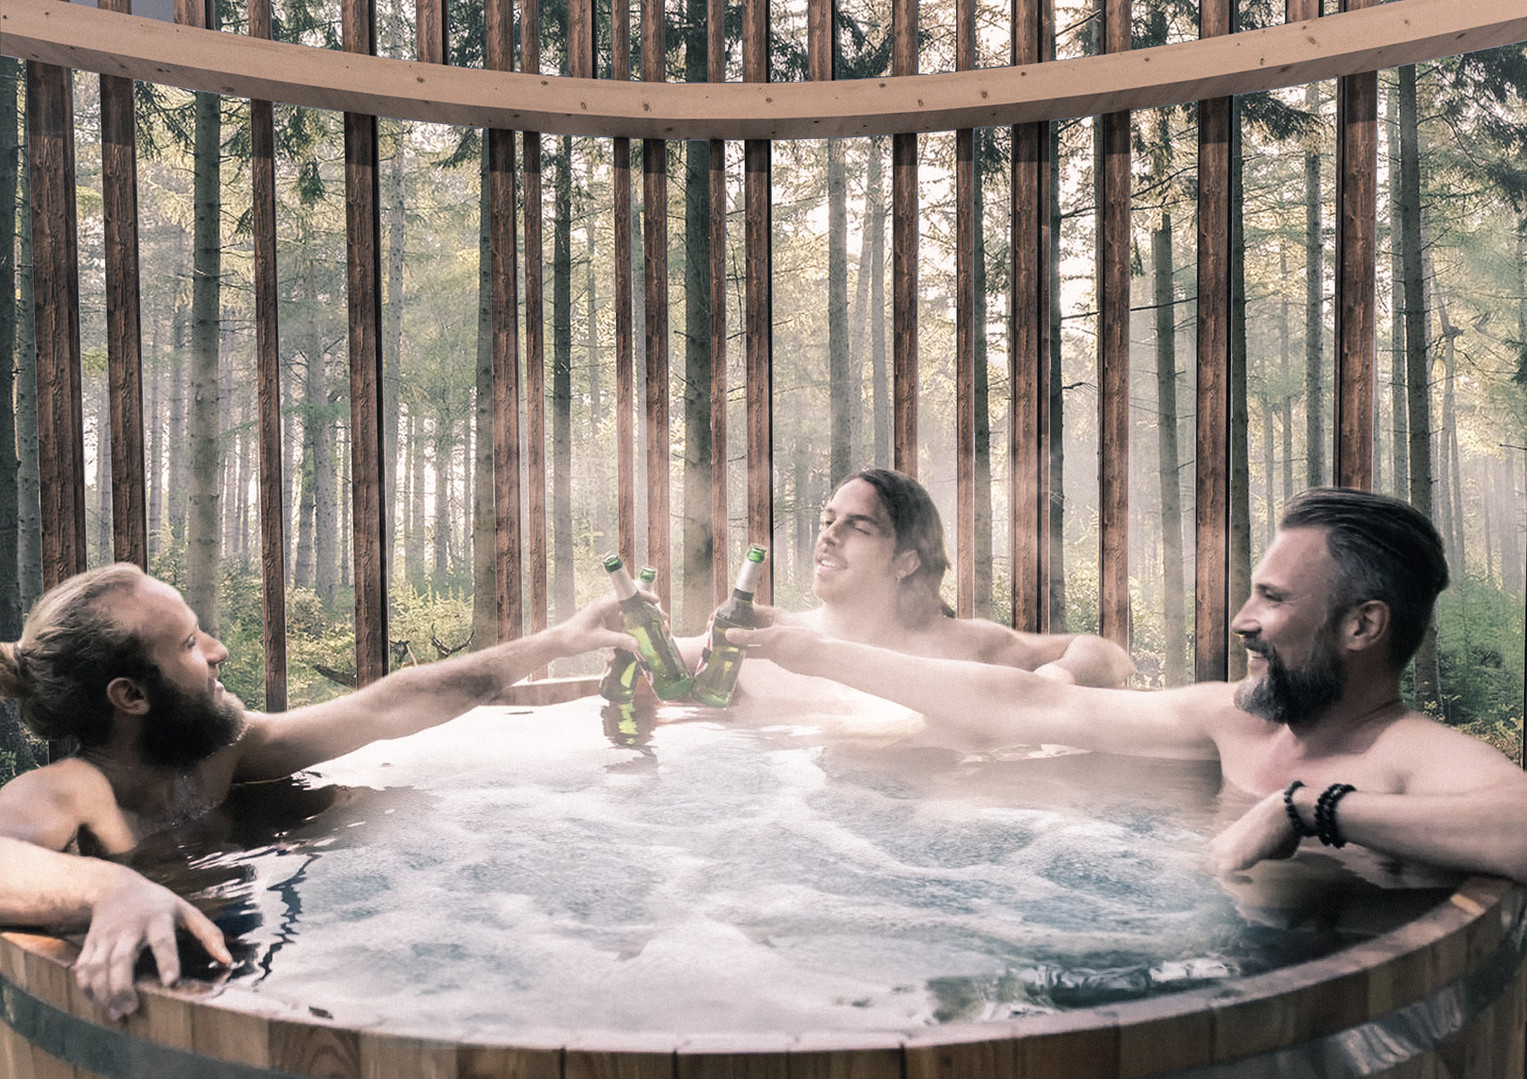 Hot tub in the trees